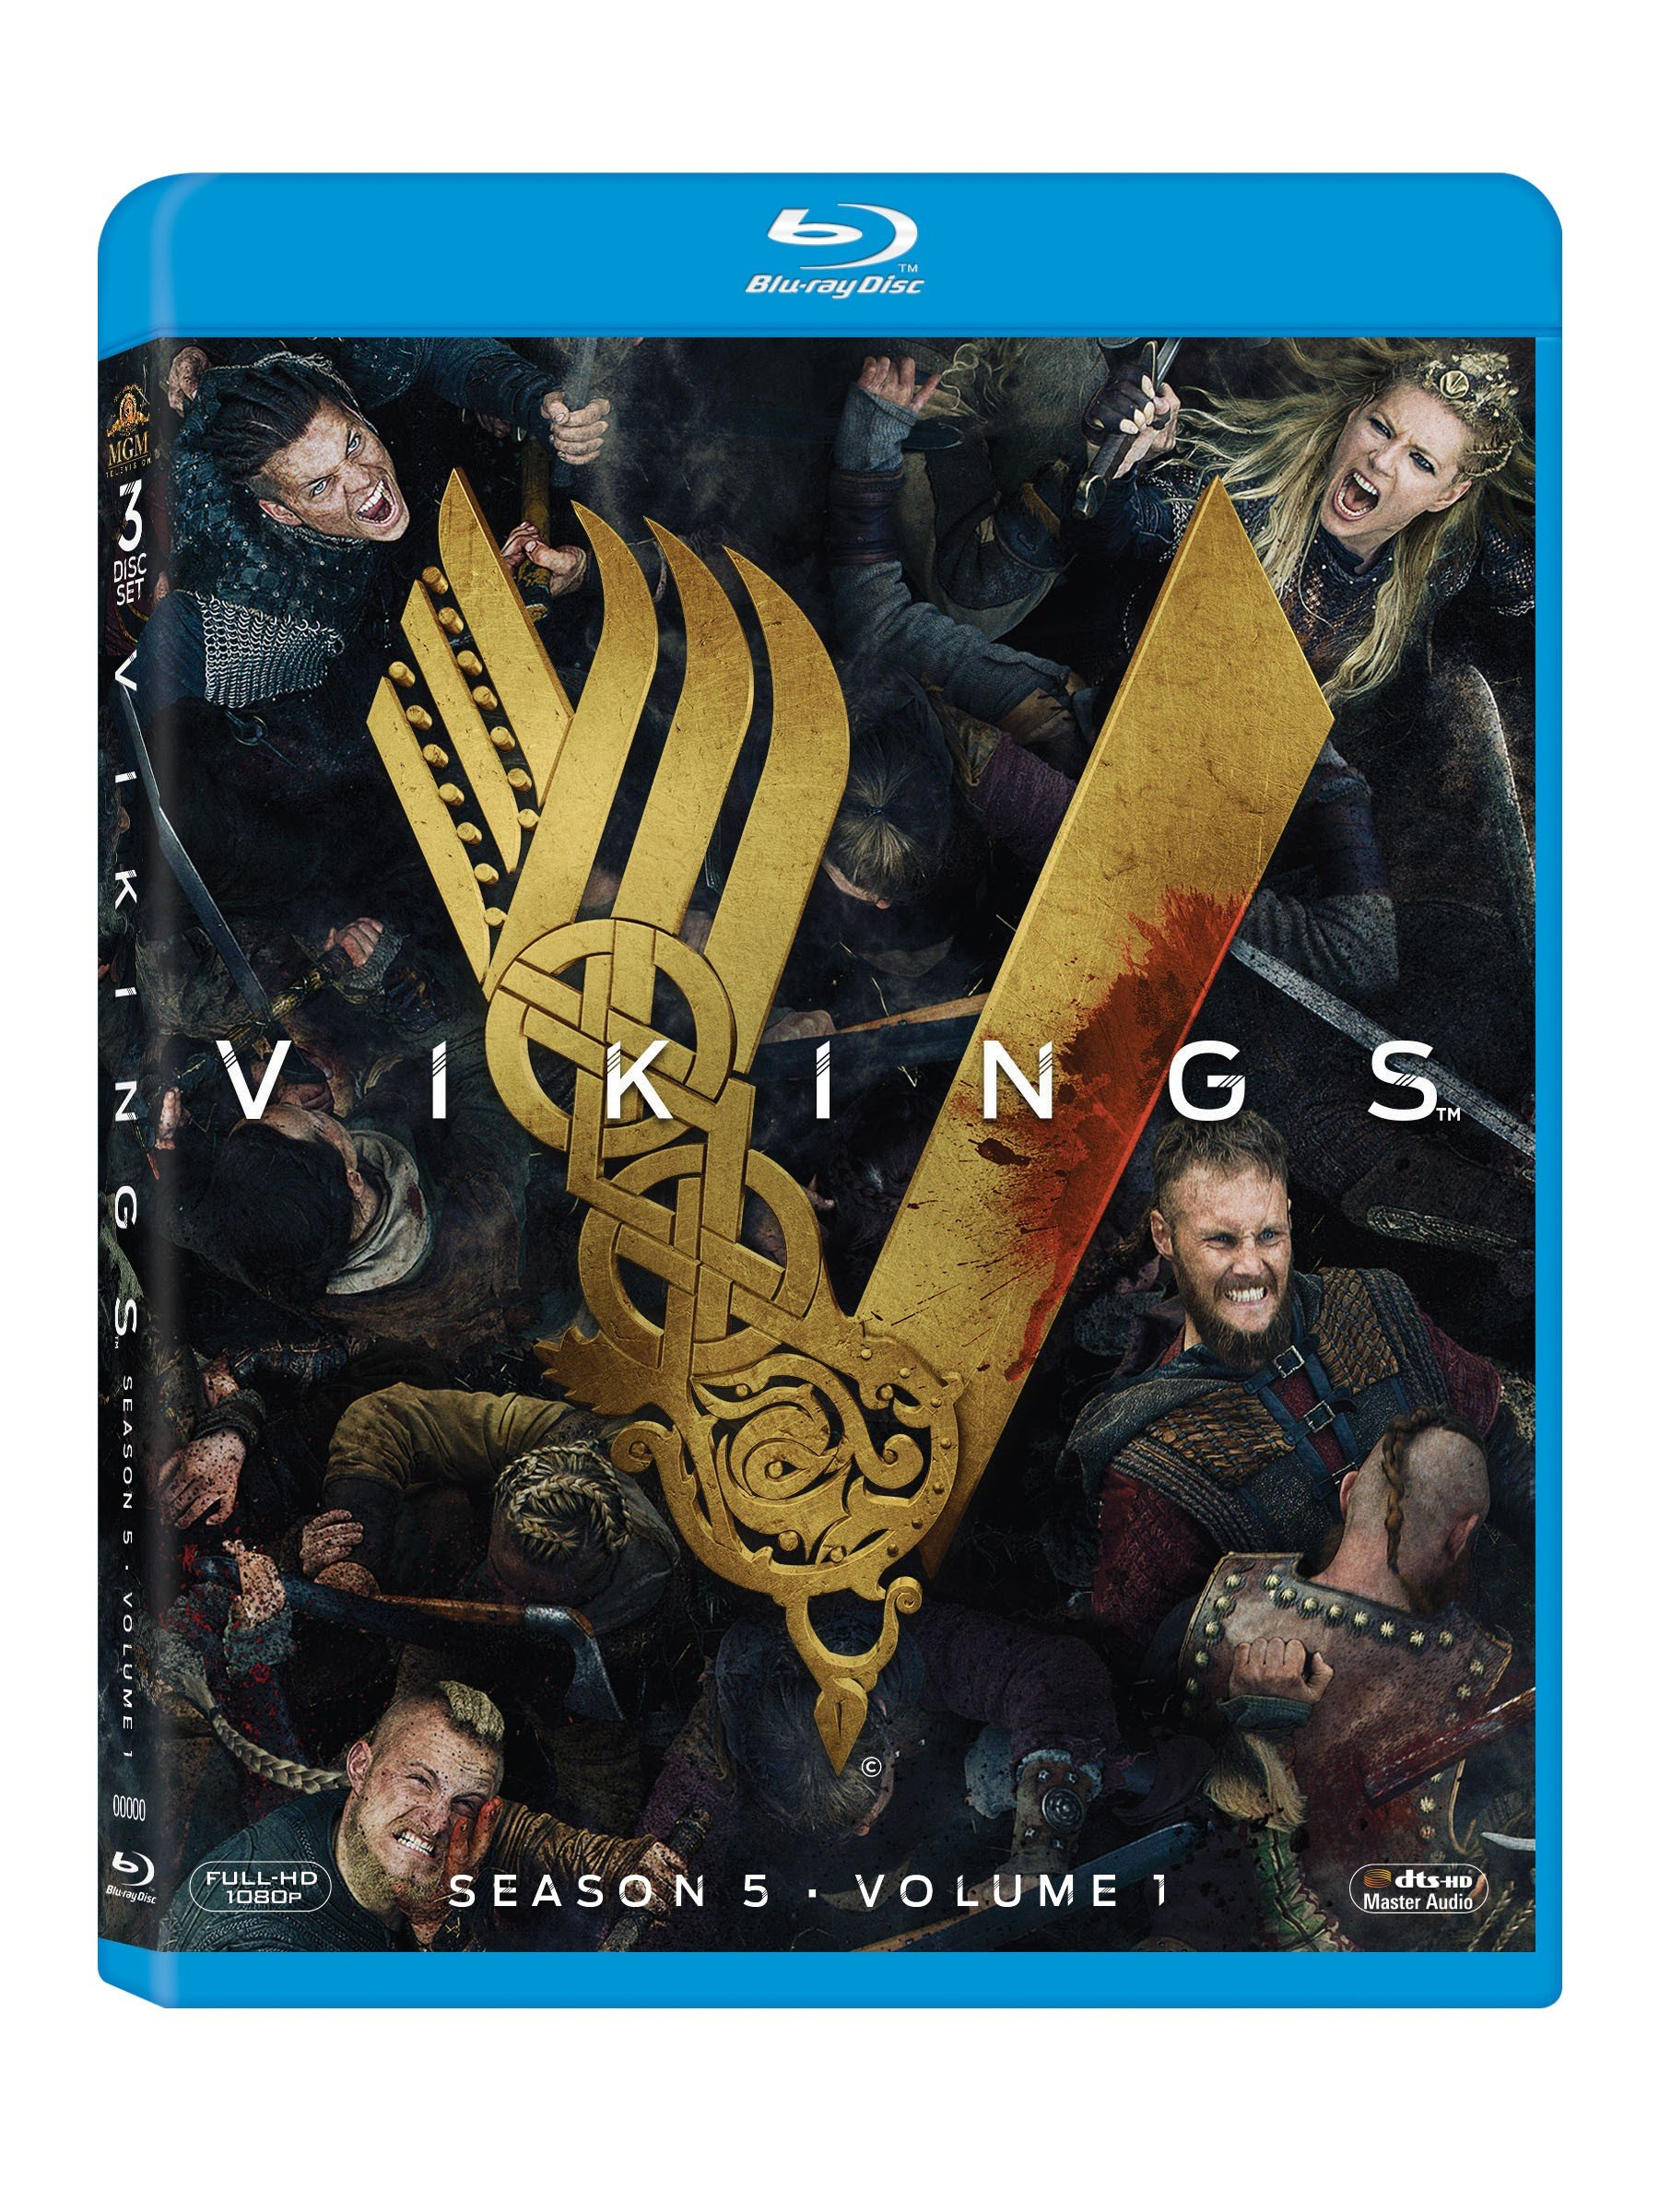 Blu-ray : Vikings: Season 5 - Vol 1 (Subtitled, Widescreen, Digital Theater System, Dolby, 3PC)